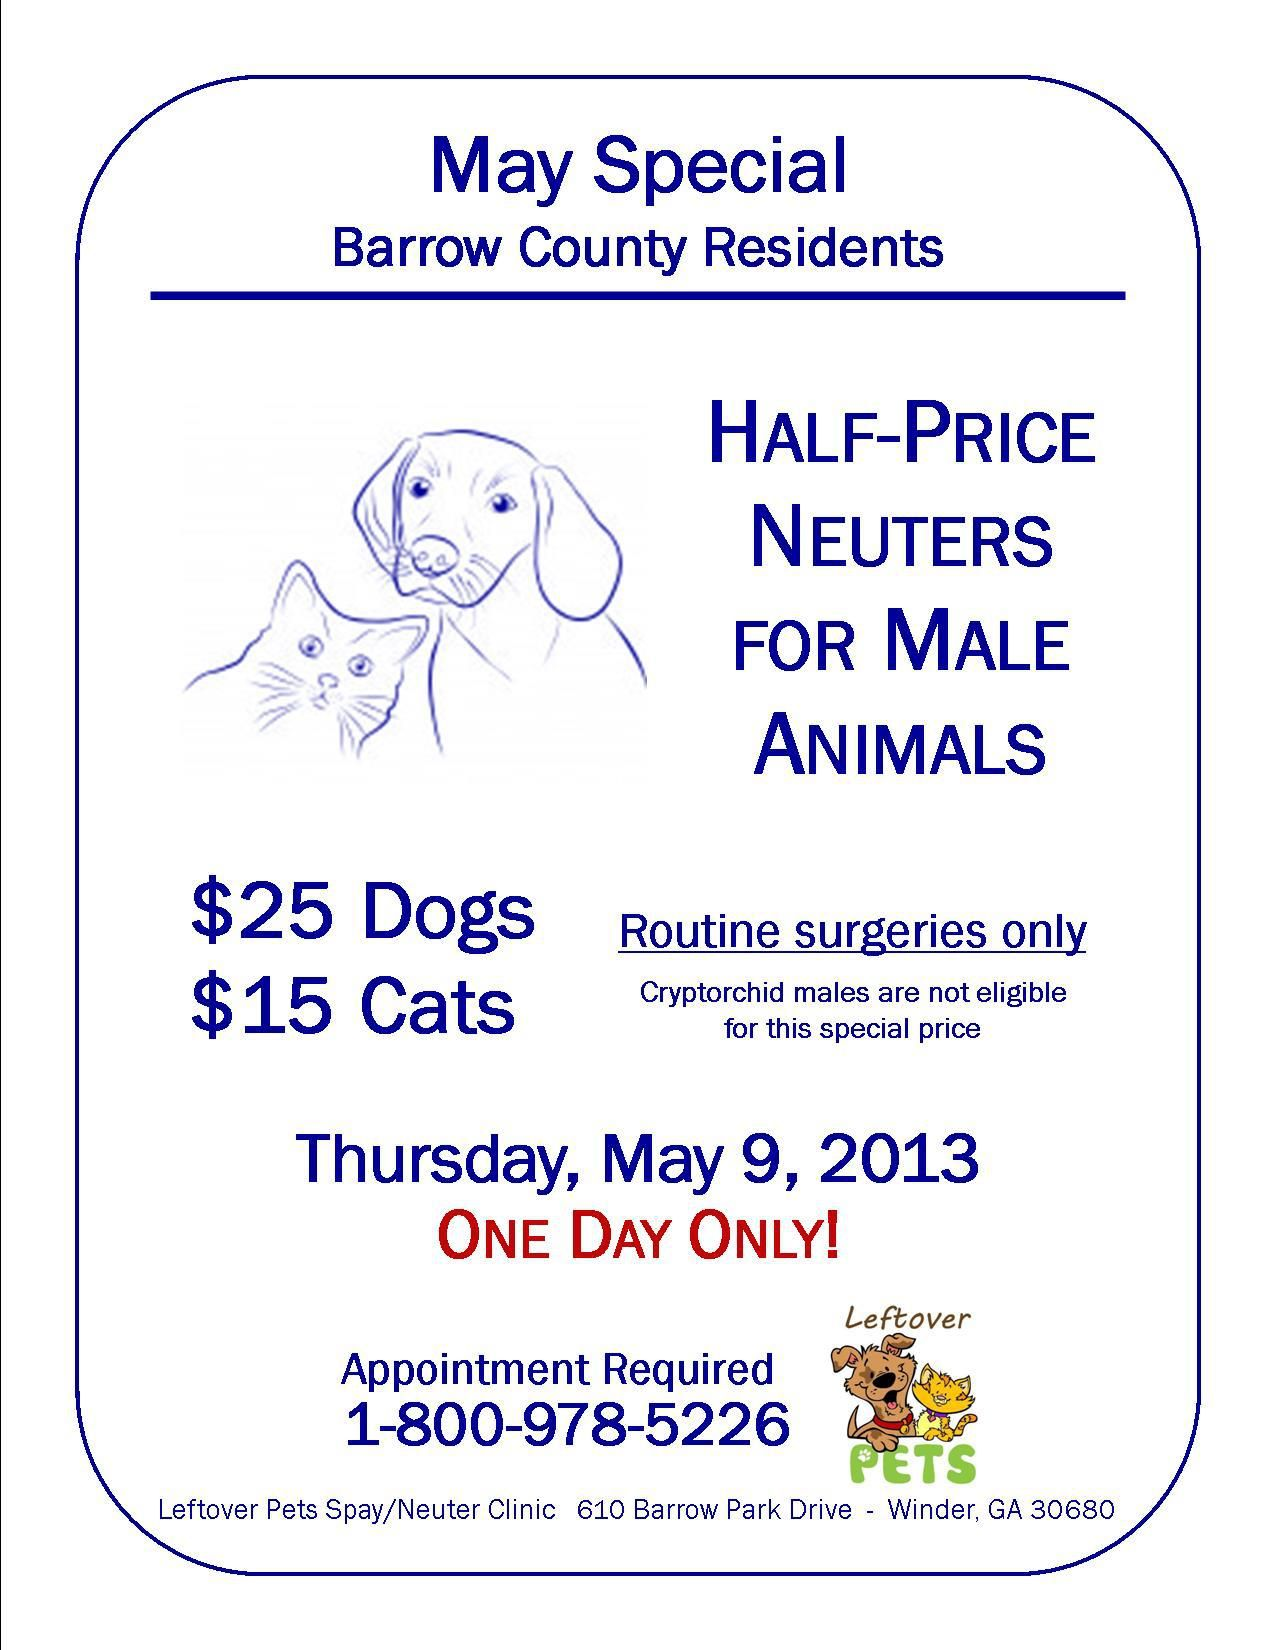 HalfPrice Neuters for male animals. Leftover Pets, 610